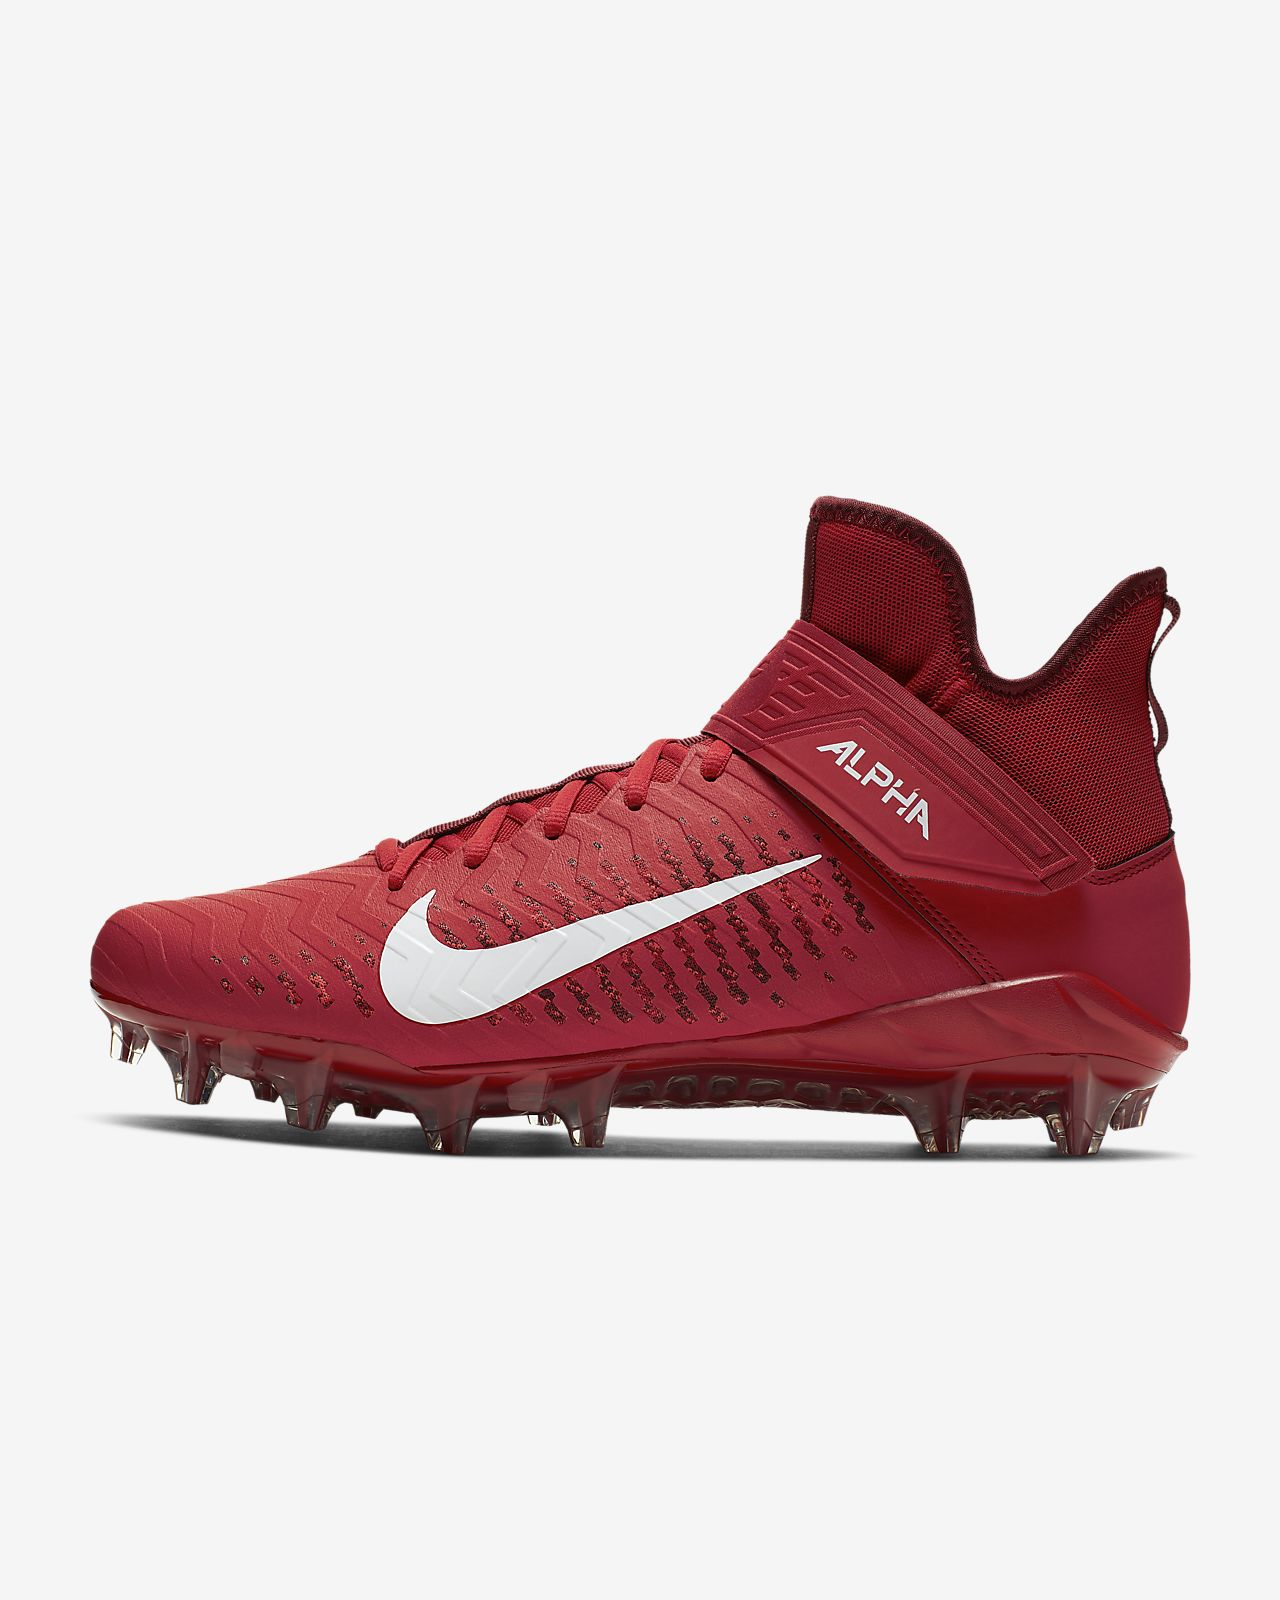 Nike Alpha Menace Pro 2 Mid Men's Football Cleat